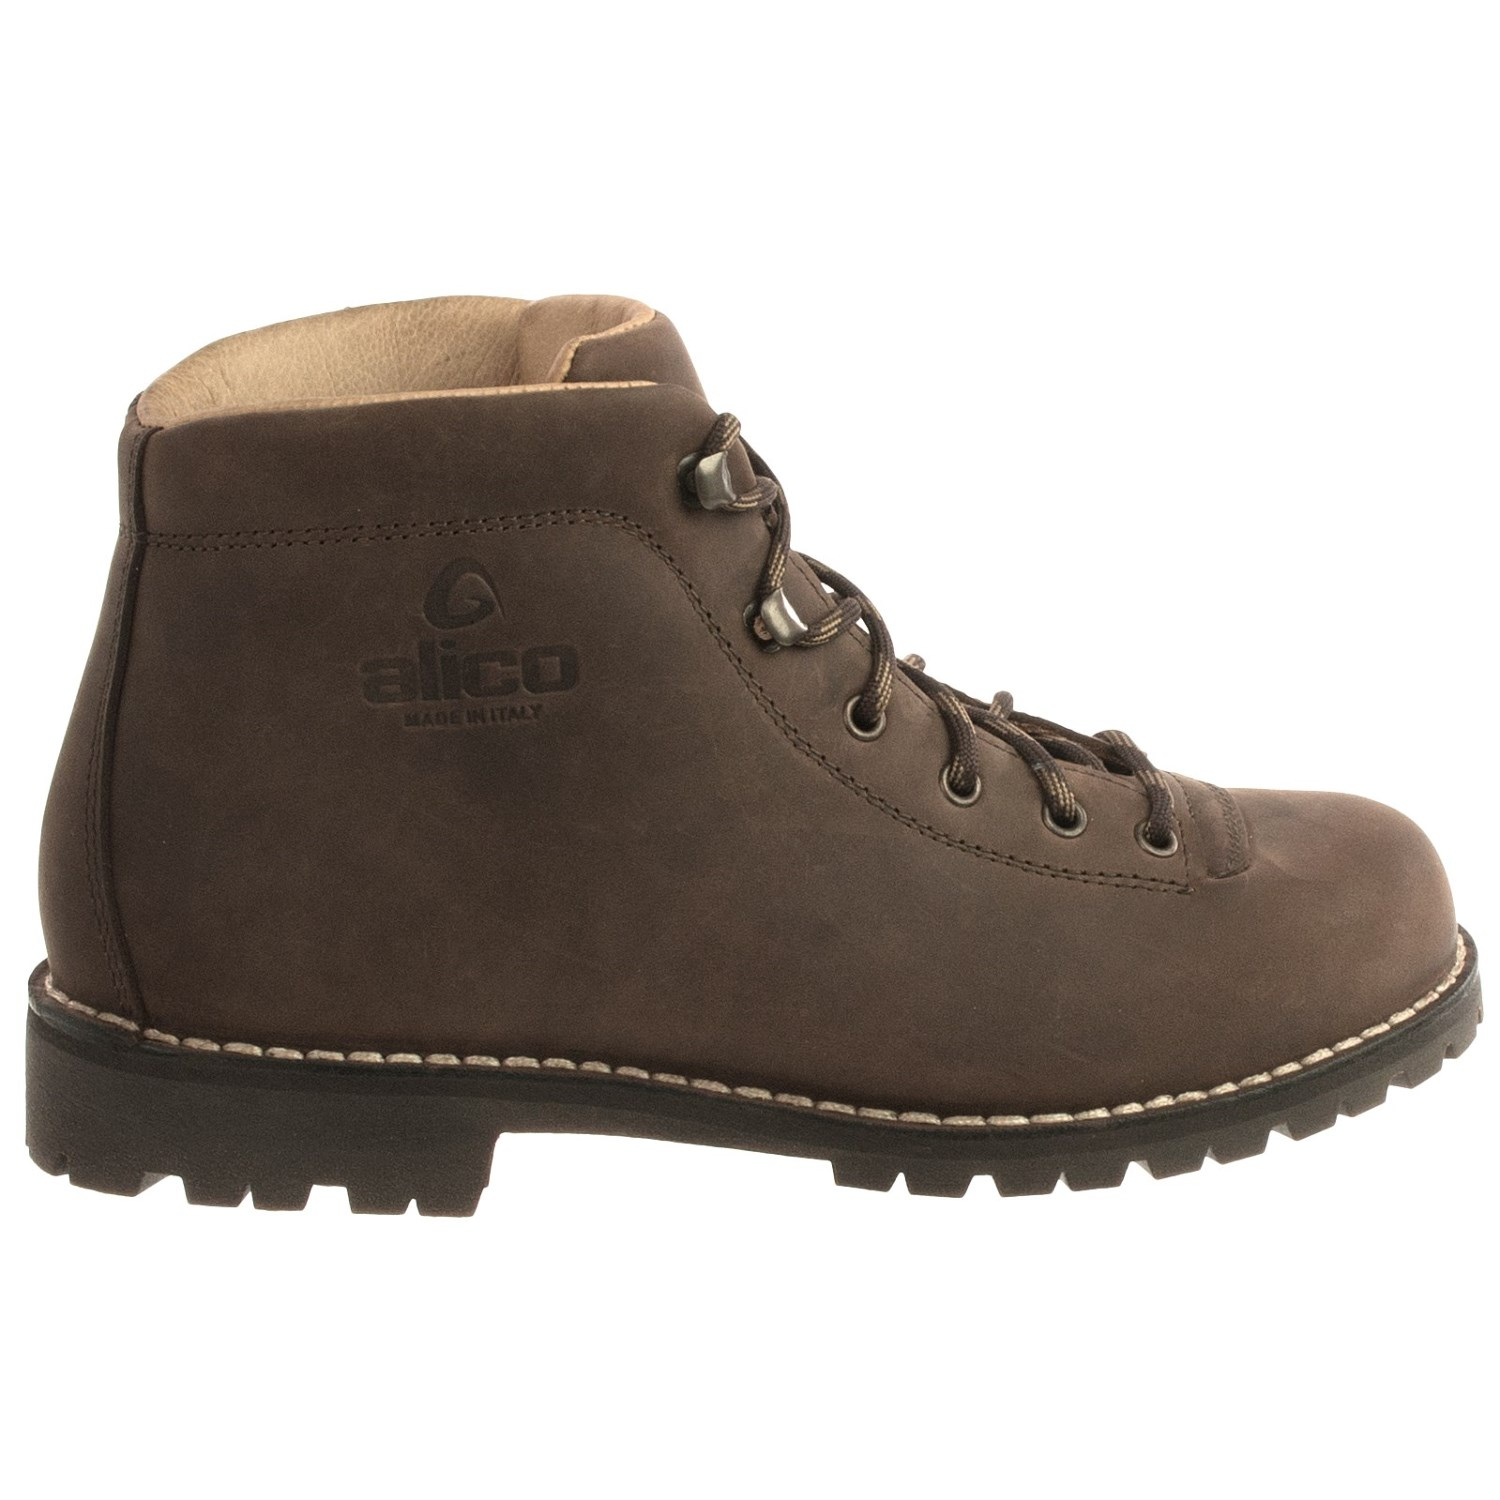 Alico Belluno Hiking Boots (For Men) - Save 45%